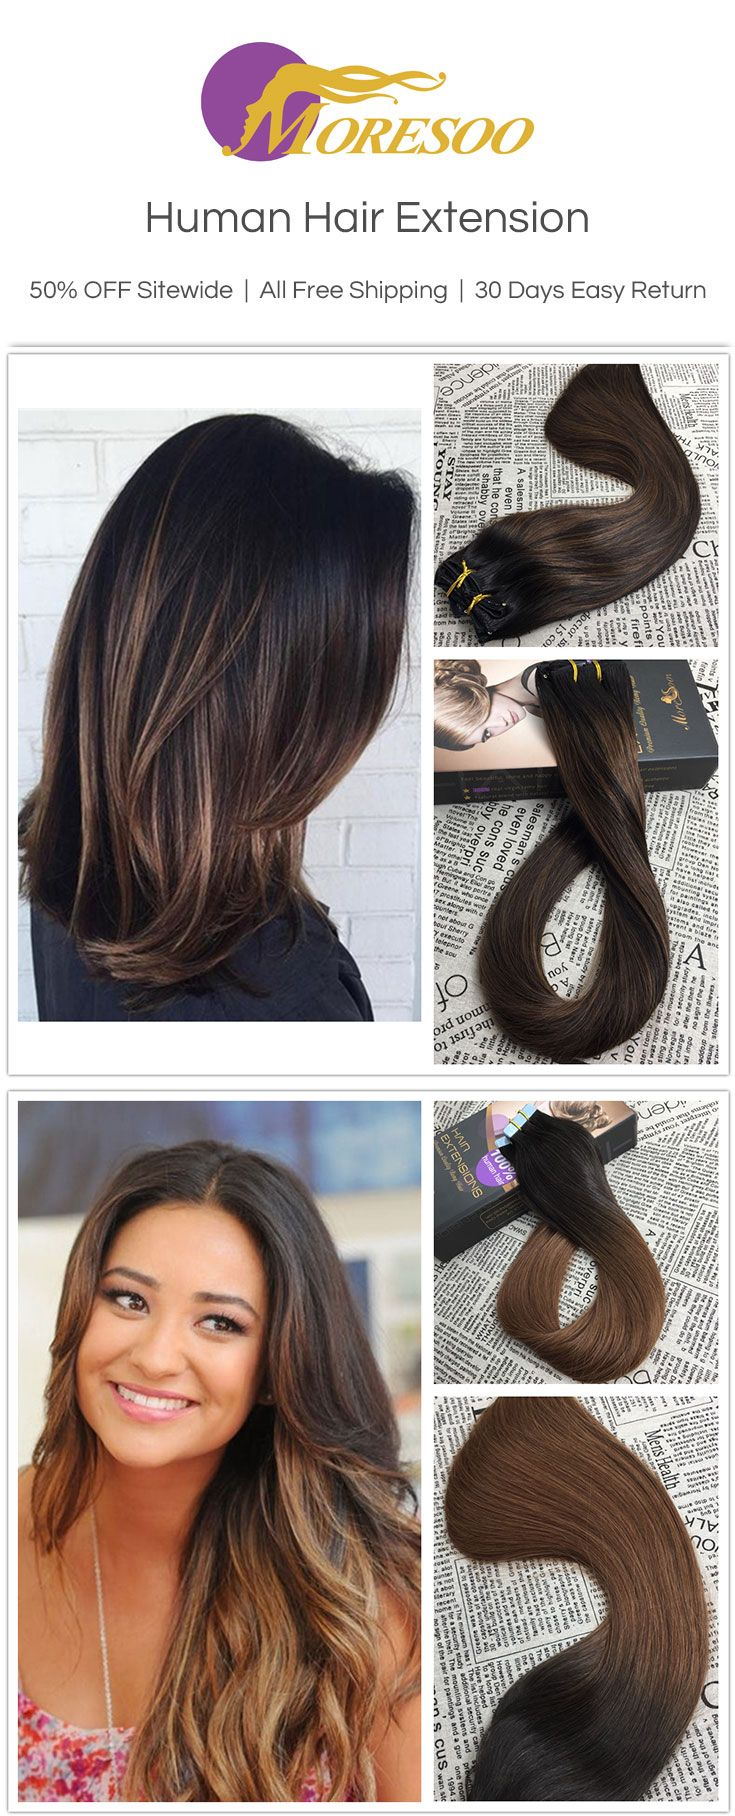 #Moresoo Human Hair Extension, tape in human hair extension. Best human hair extension gives you a new look.